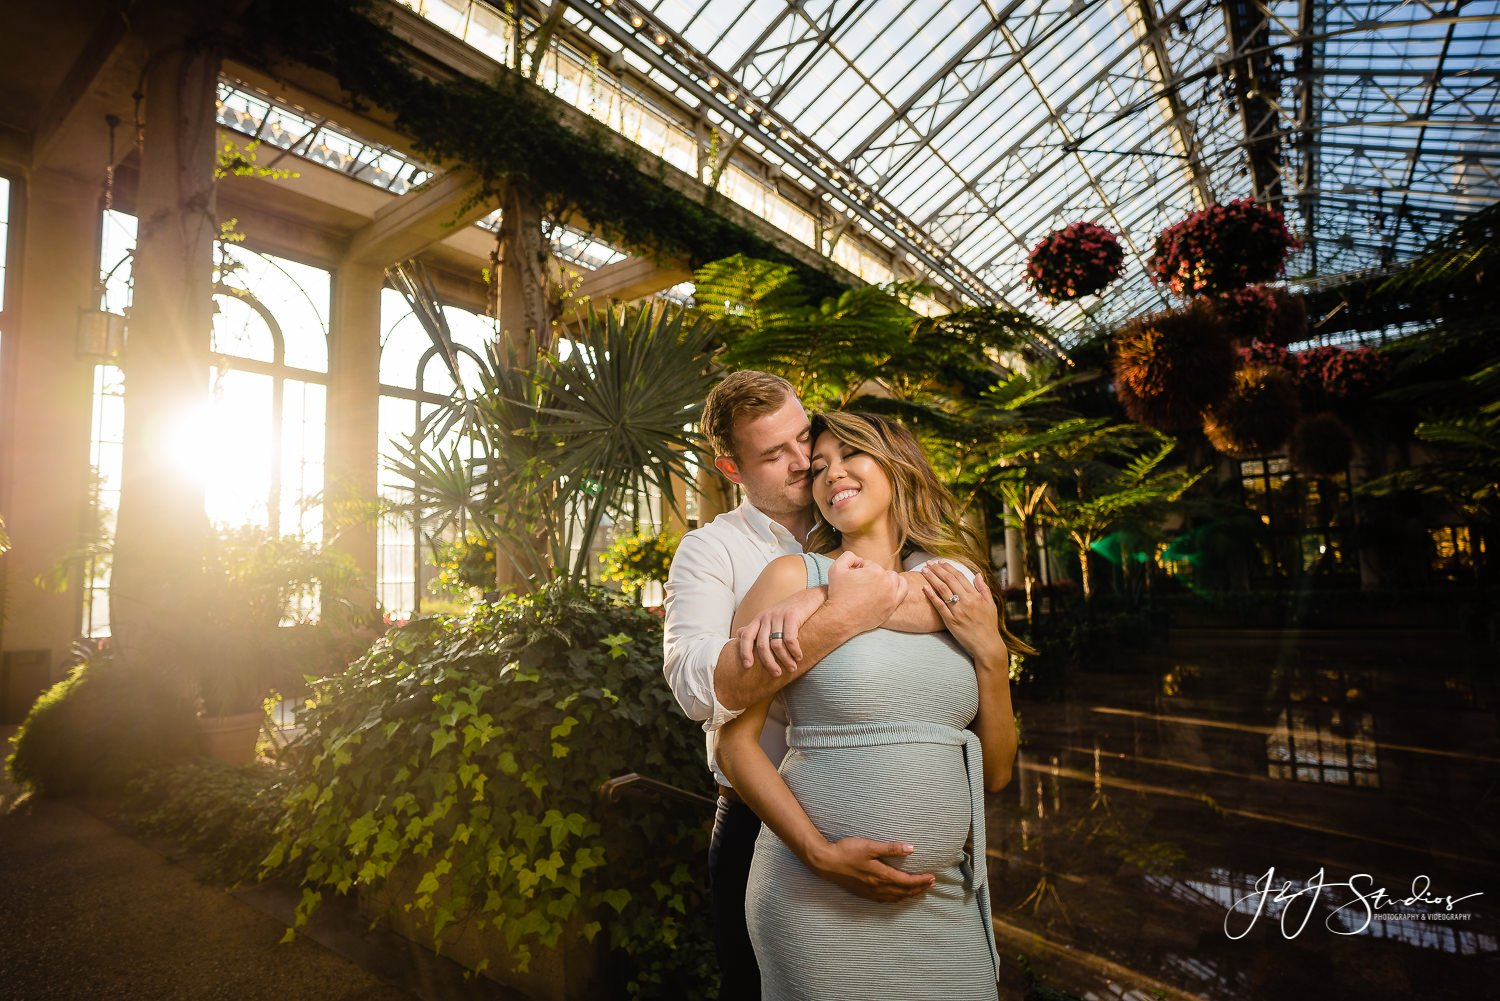 longwood gardens sunset maternity shoot